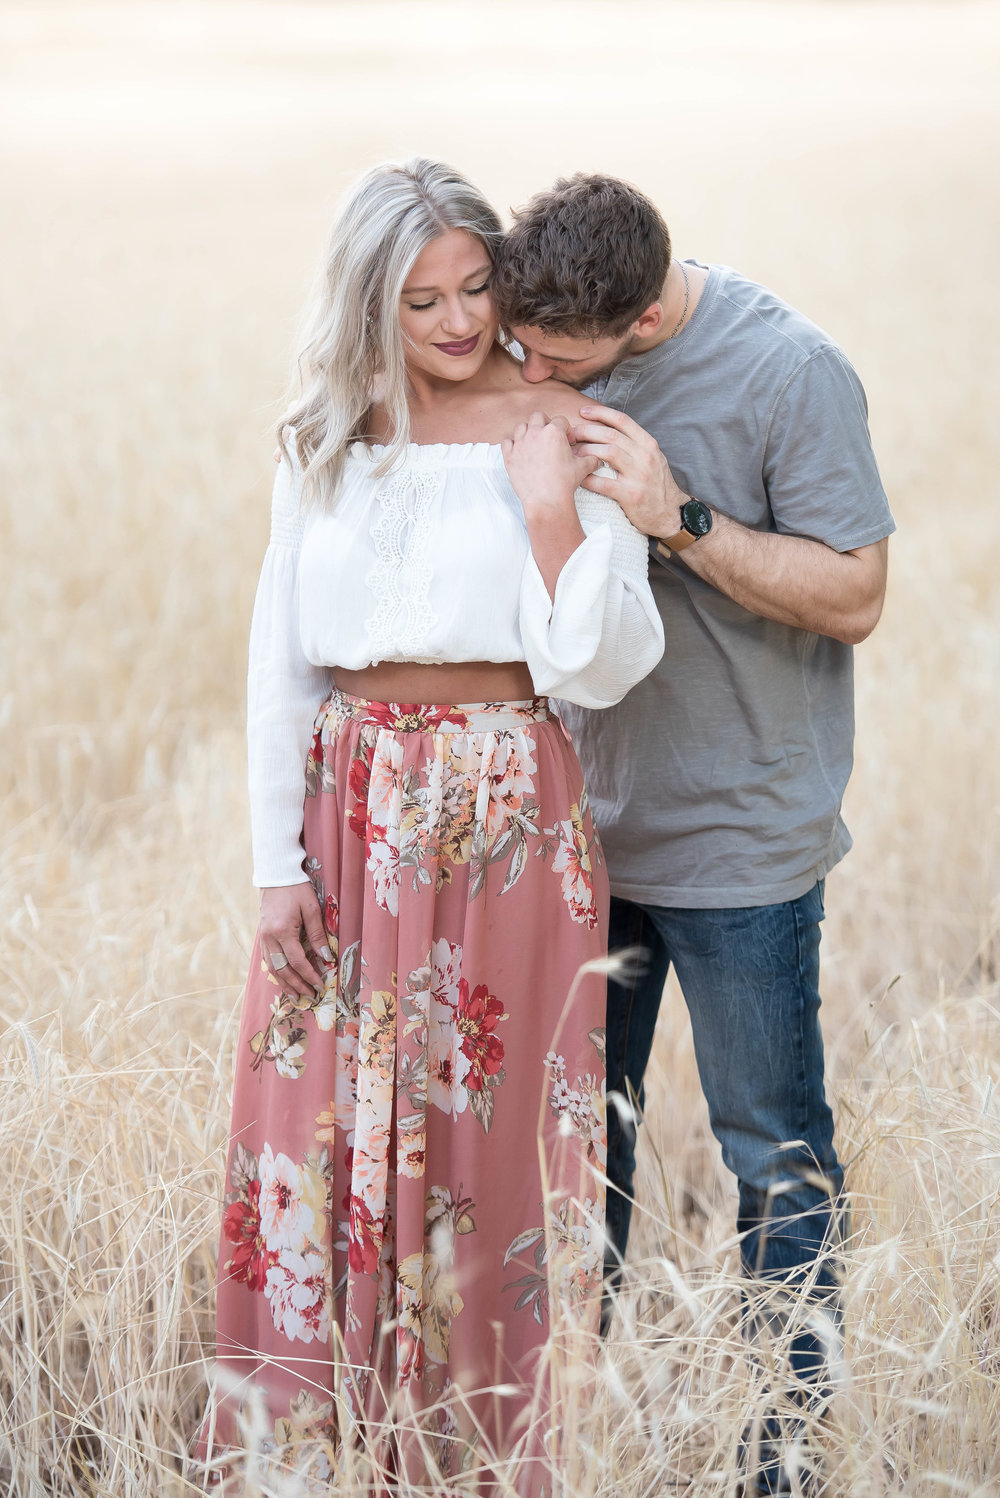 Couple Session - Fitness Couples - Tall Grass Field - Engagement Portrait Ideas - Engagement Session Ideas - Couple Session Ideas - Spring Picture Ideas-5.jpg